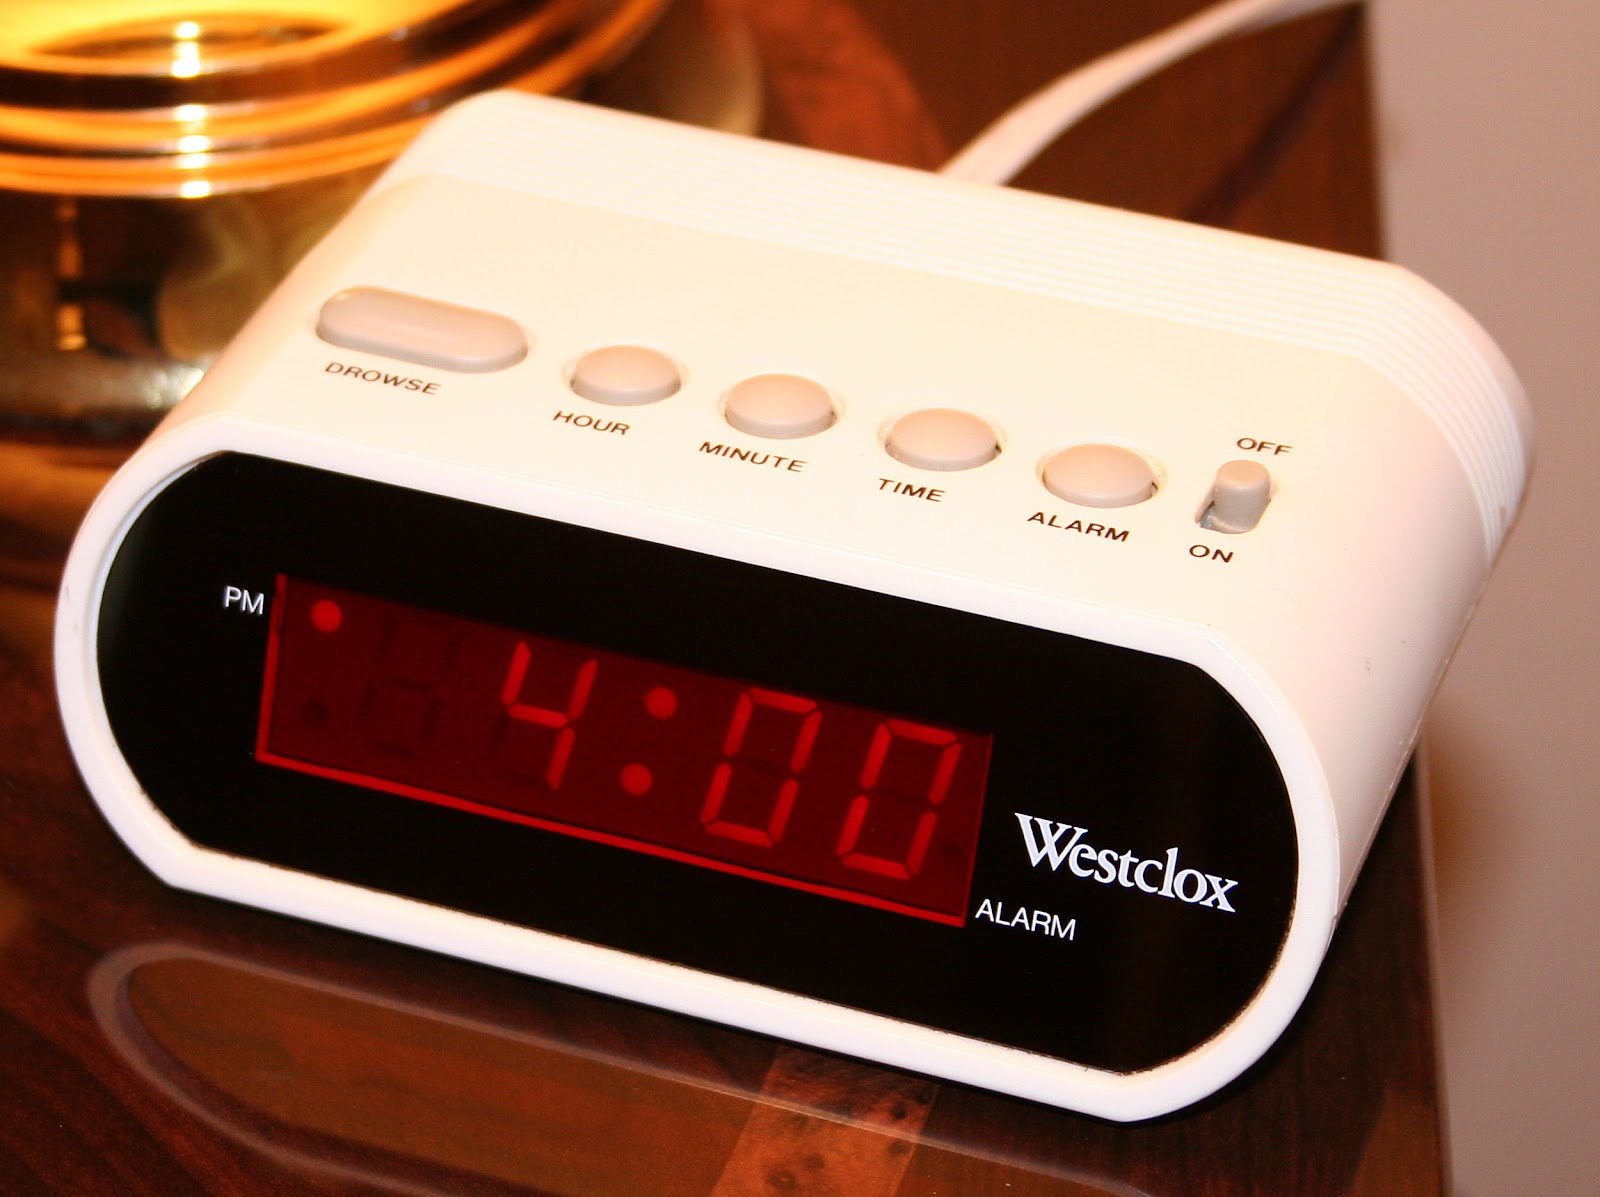 Basic digital alarm clock